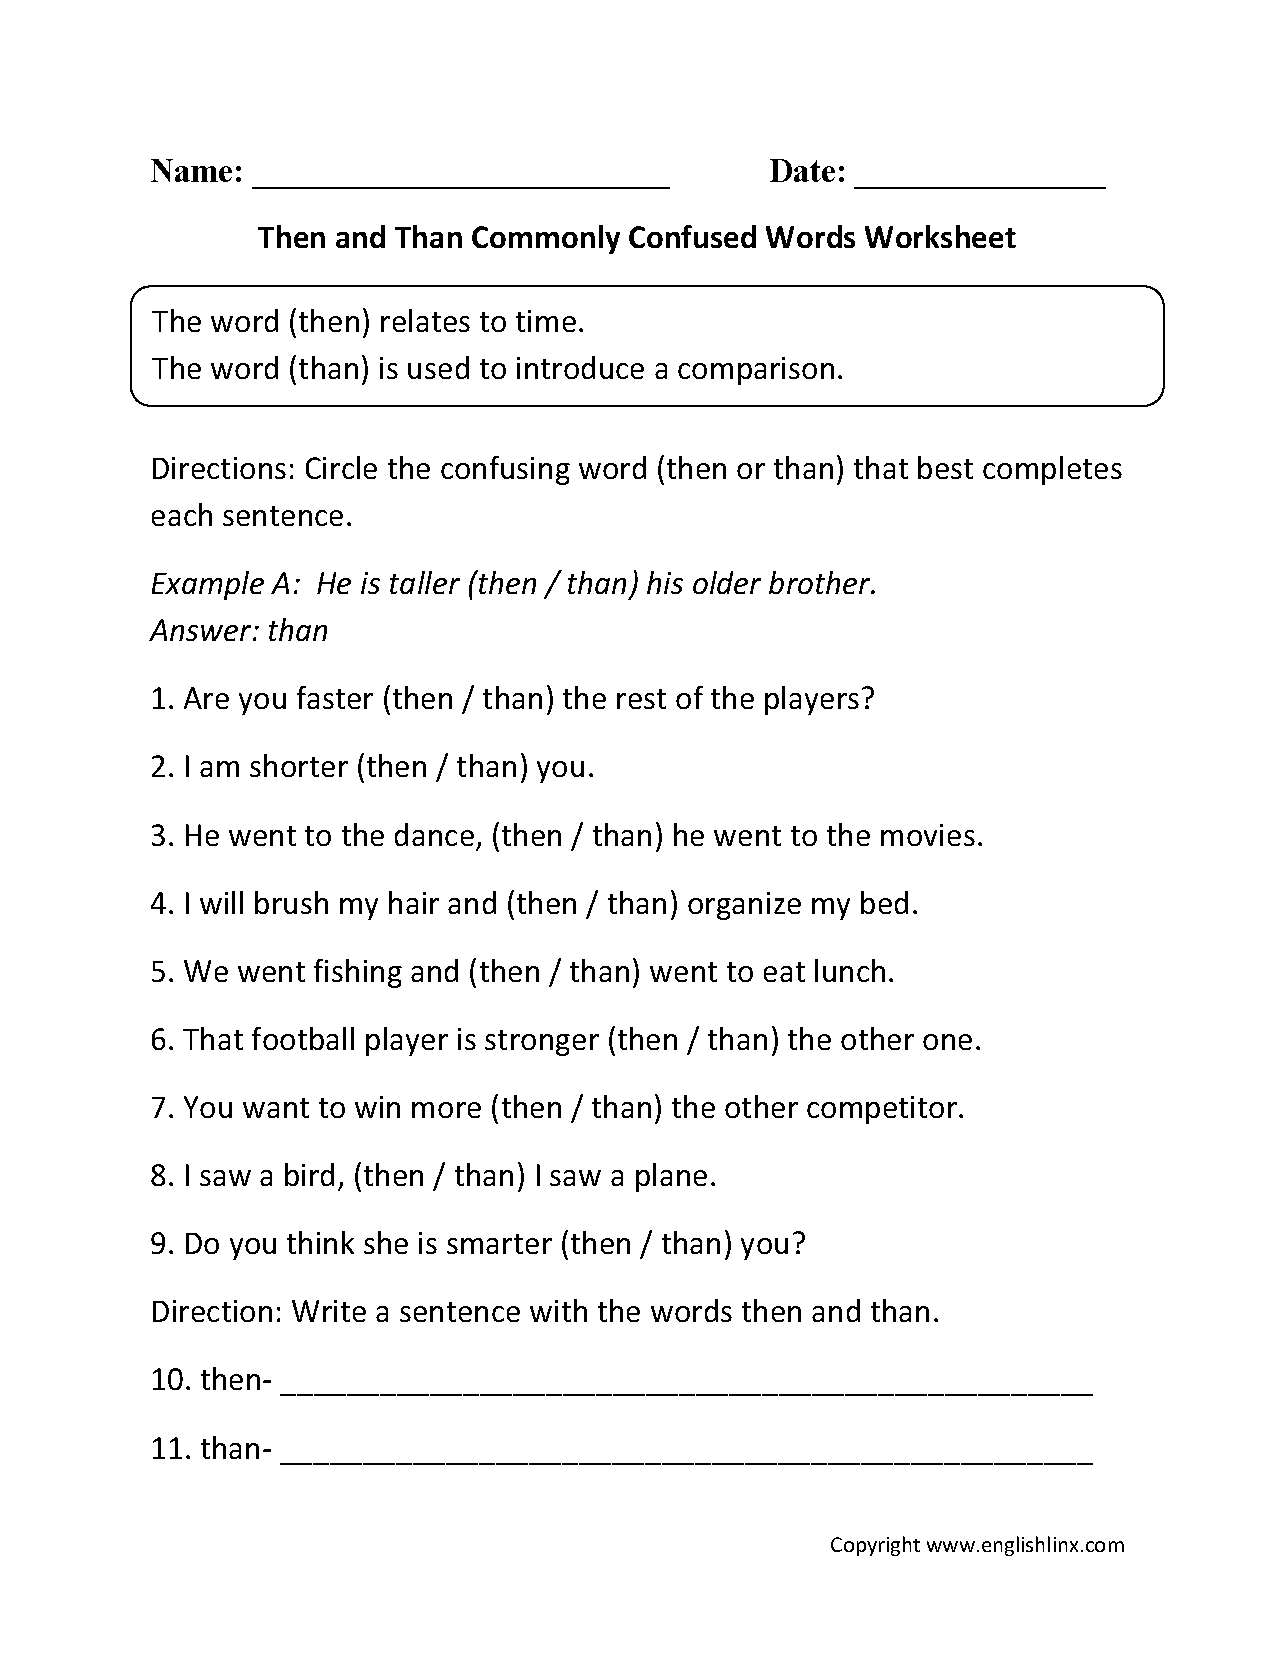 Then Vs Than Commonly Confused Words Worksheets Homeschooling